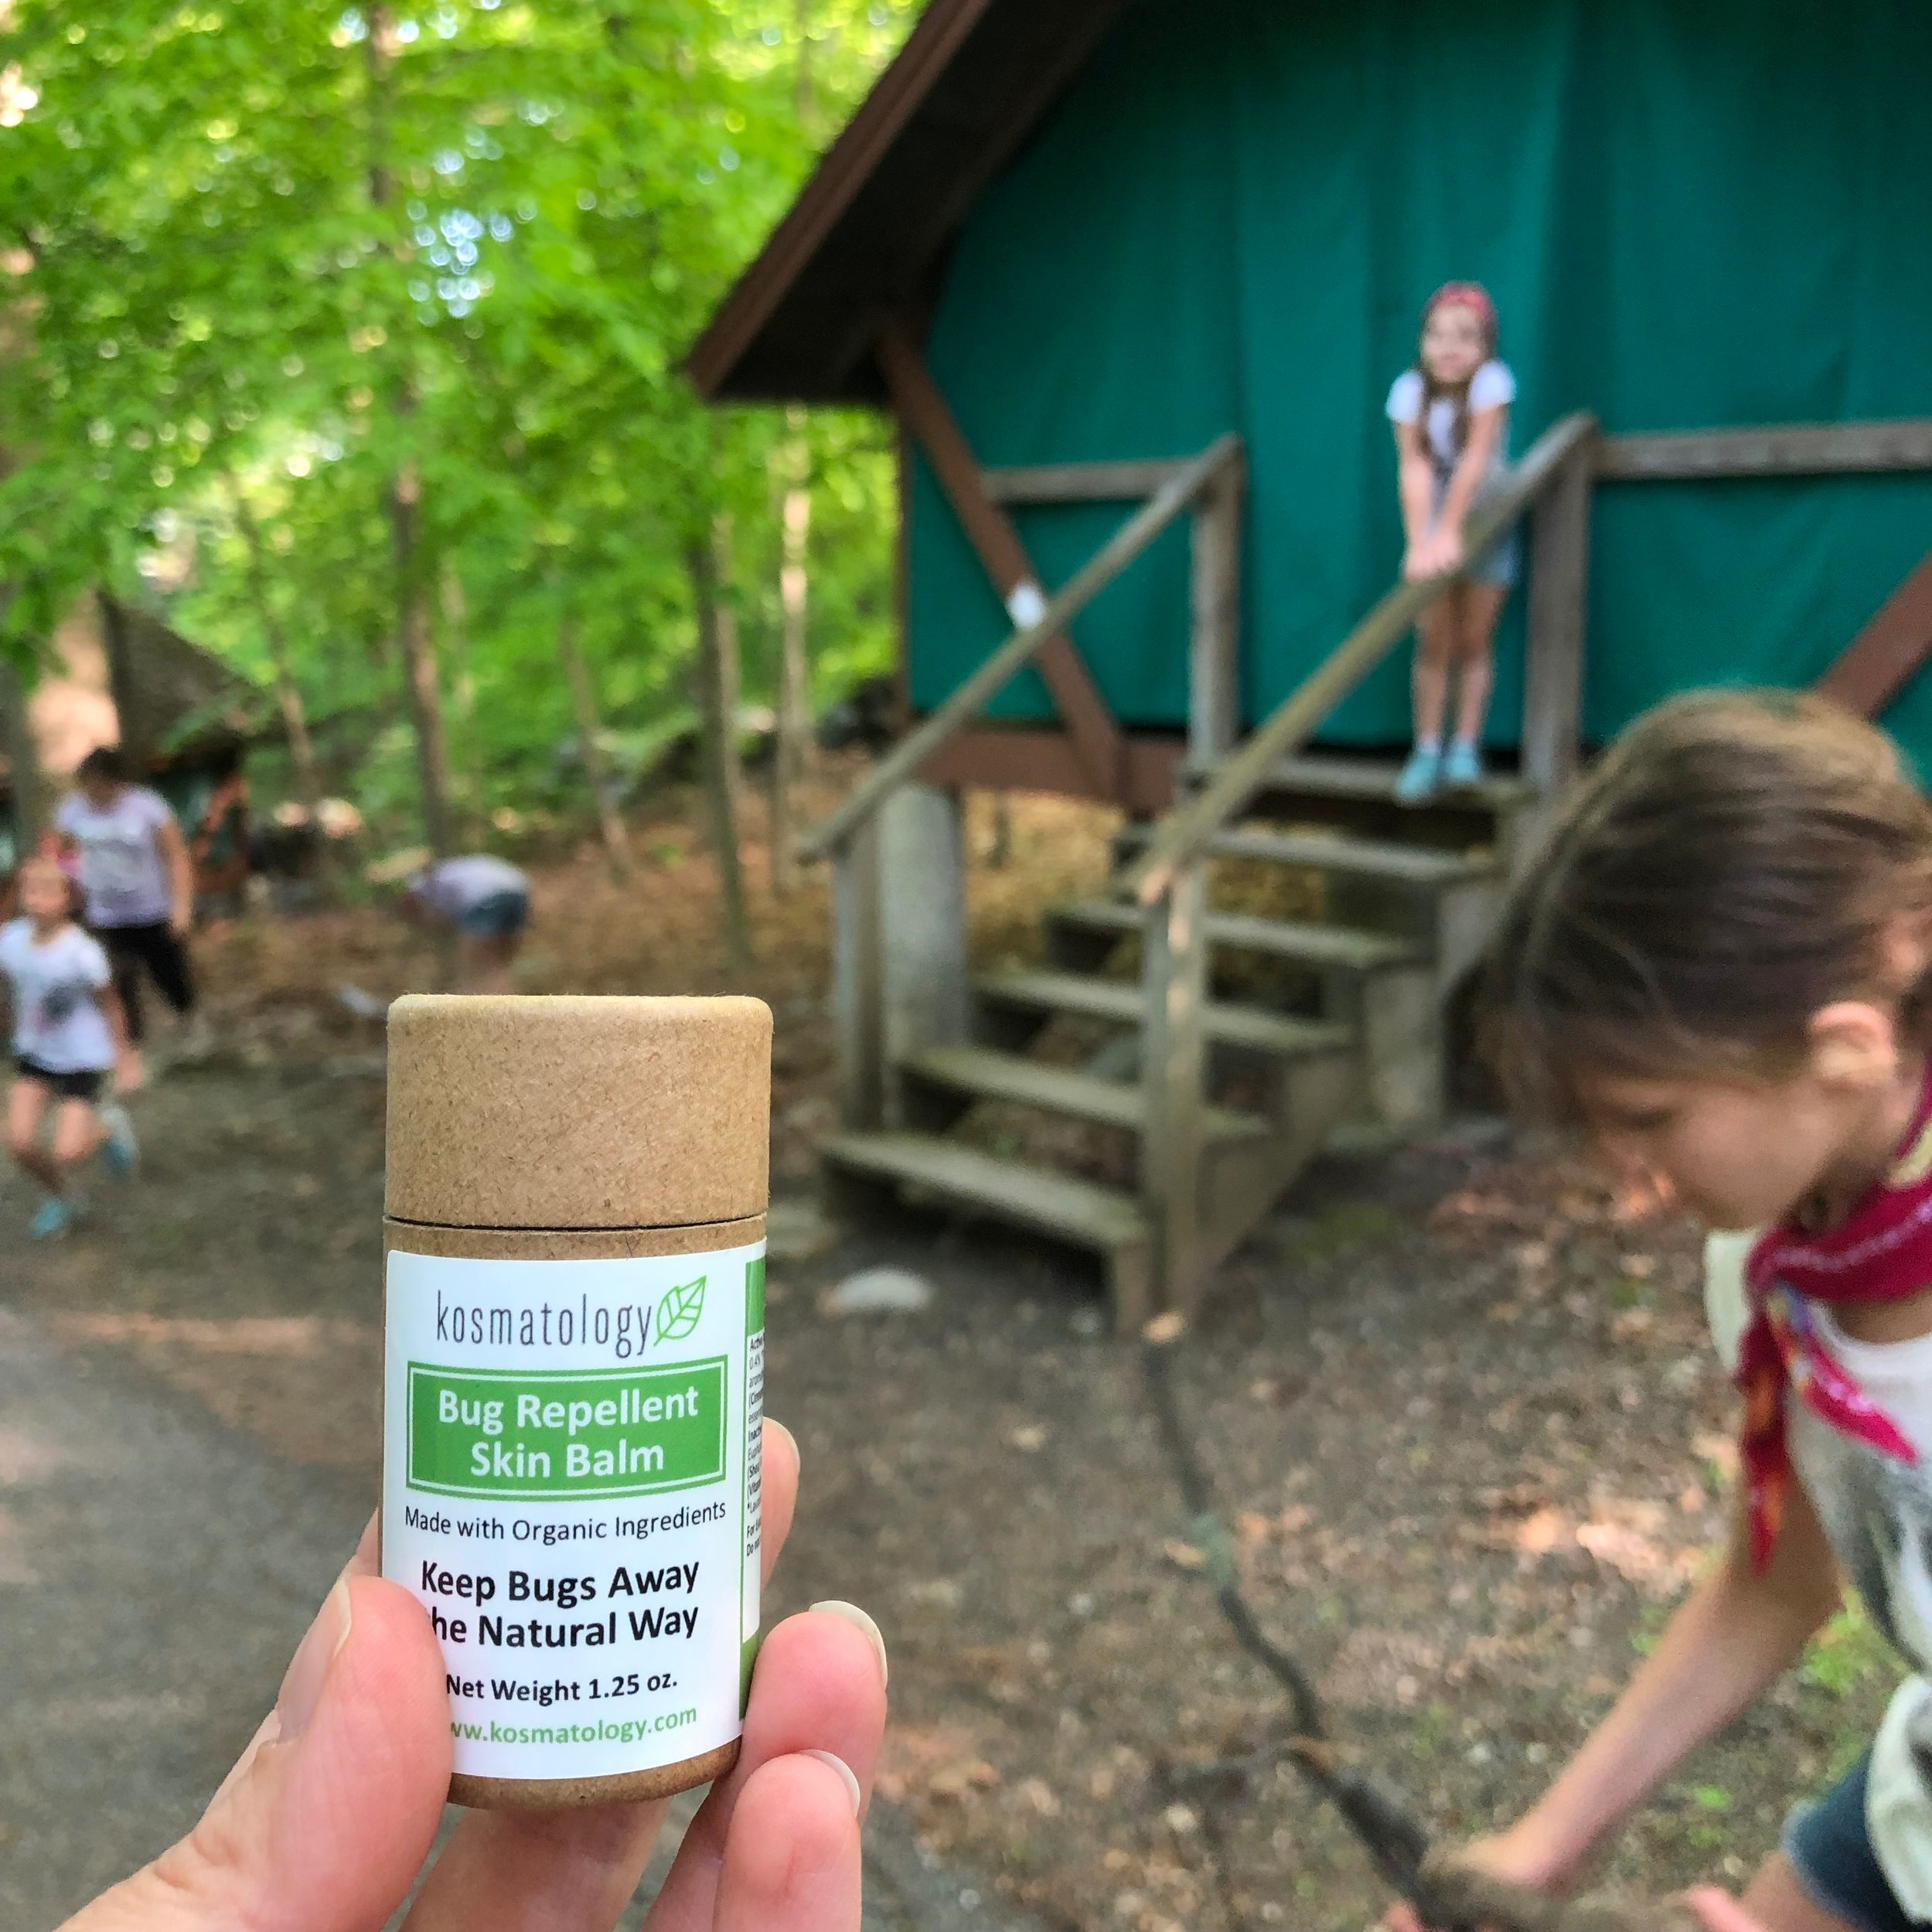 Kosmatology Bug Repellent Skin Balm held by a hand with a tent and children in the background in a wooded area.